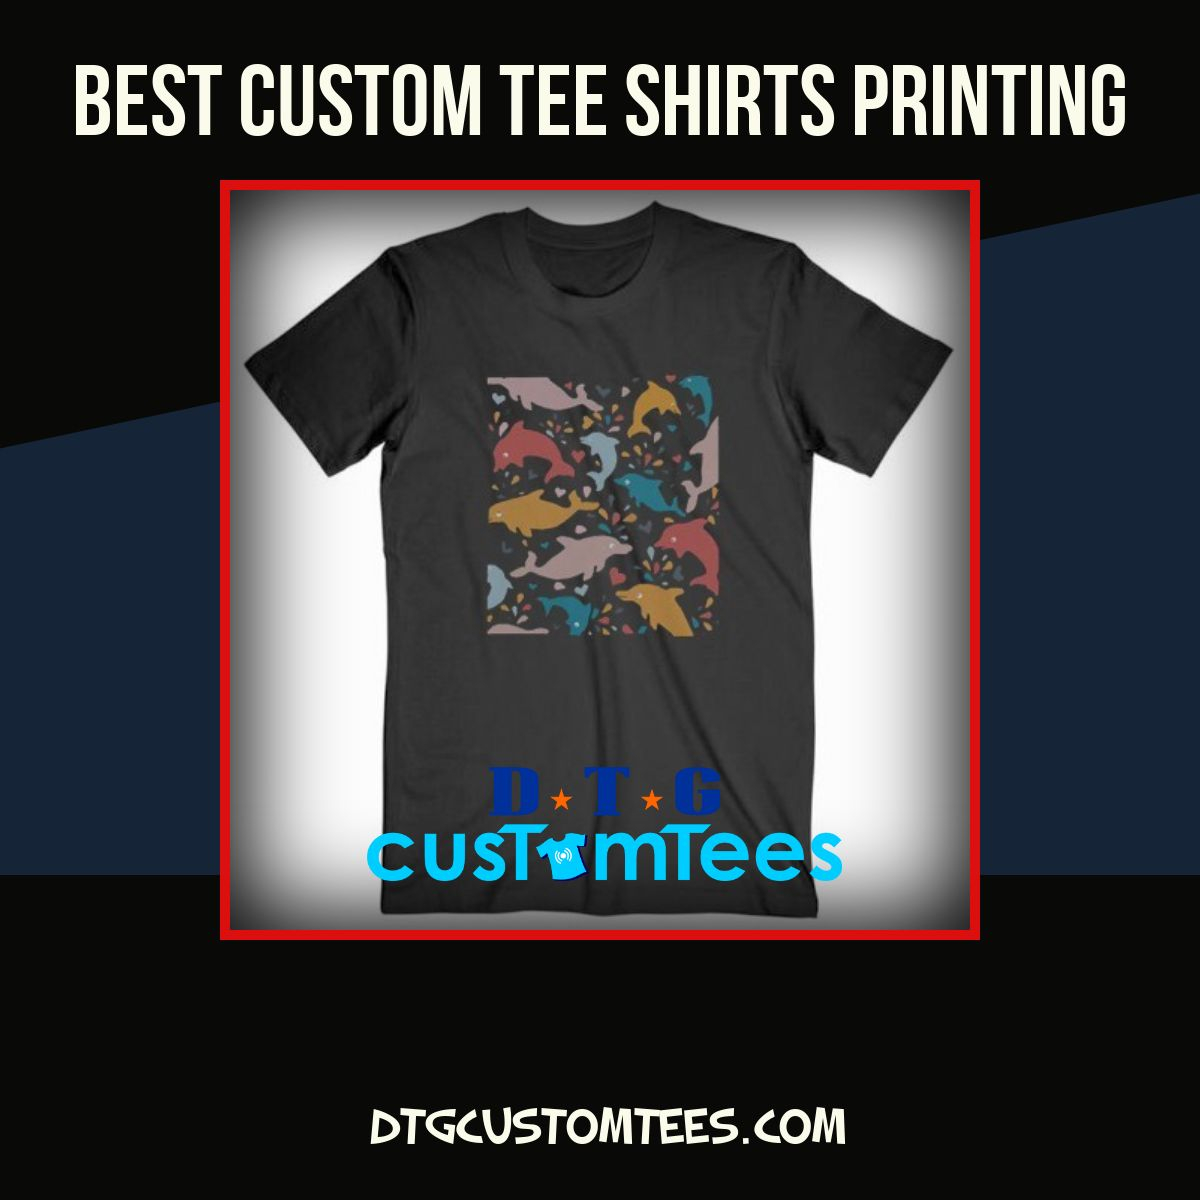 da89628f ... to publish or embellish your Clothing for a cost-effective price that  is suitable for your budget.You are able to make your own t t-shirts  economical, ...